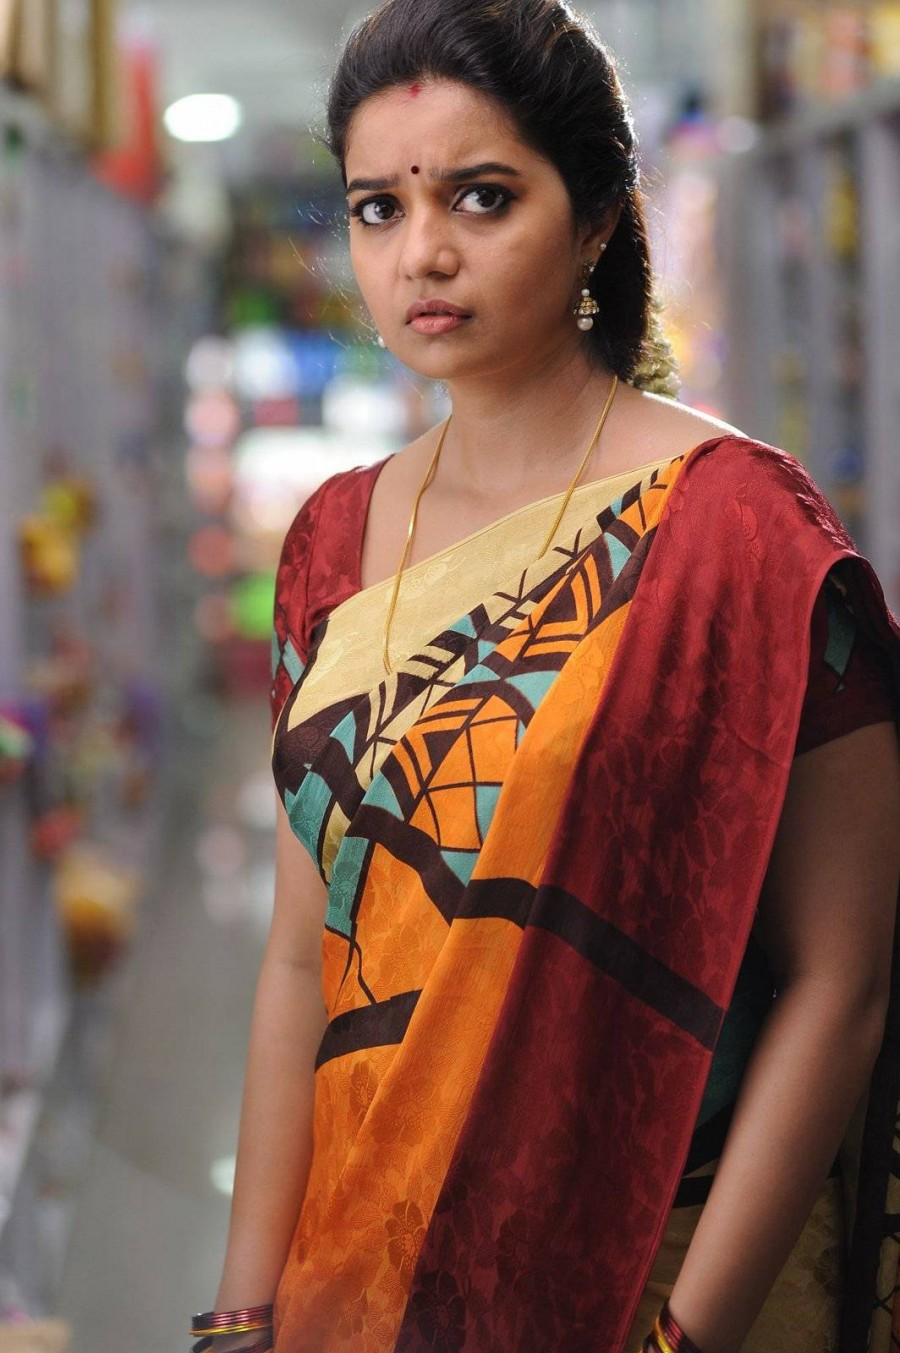 Swathi Reddy,actress Swathi Reddy,Swathi Reddy pics,Swathi Reddy images,Swathi Reddy photos,Swathi Reddy latest pics,hot Swathi Reddy,Swathi Reddy hot pics,hot pics,hot actress pics